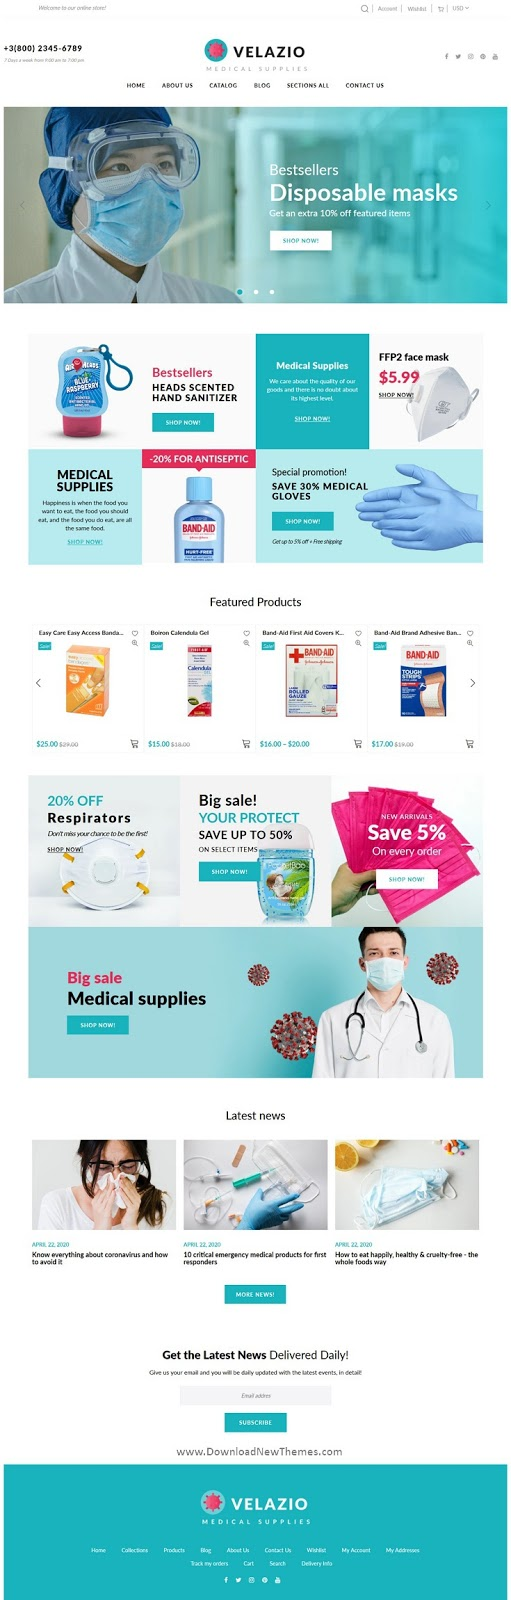 Medical Supplies Responsive Website Theme